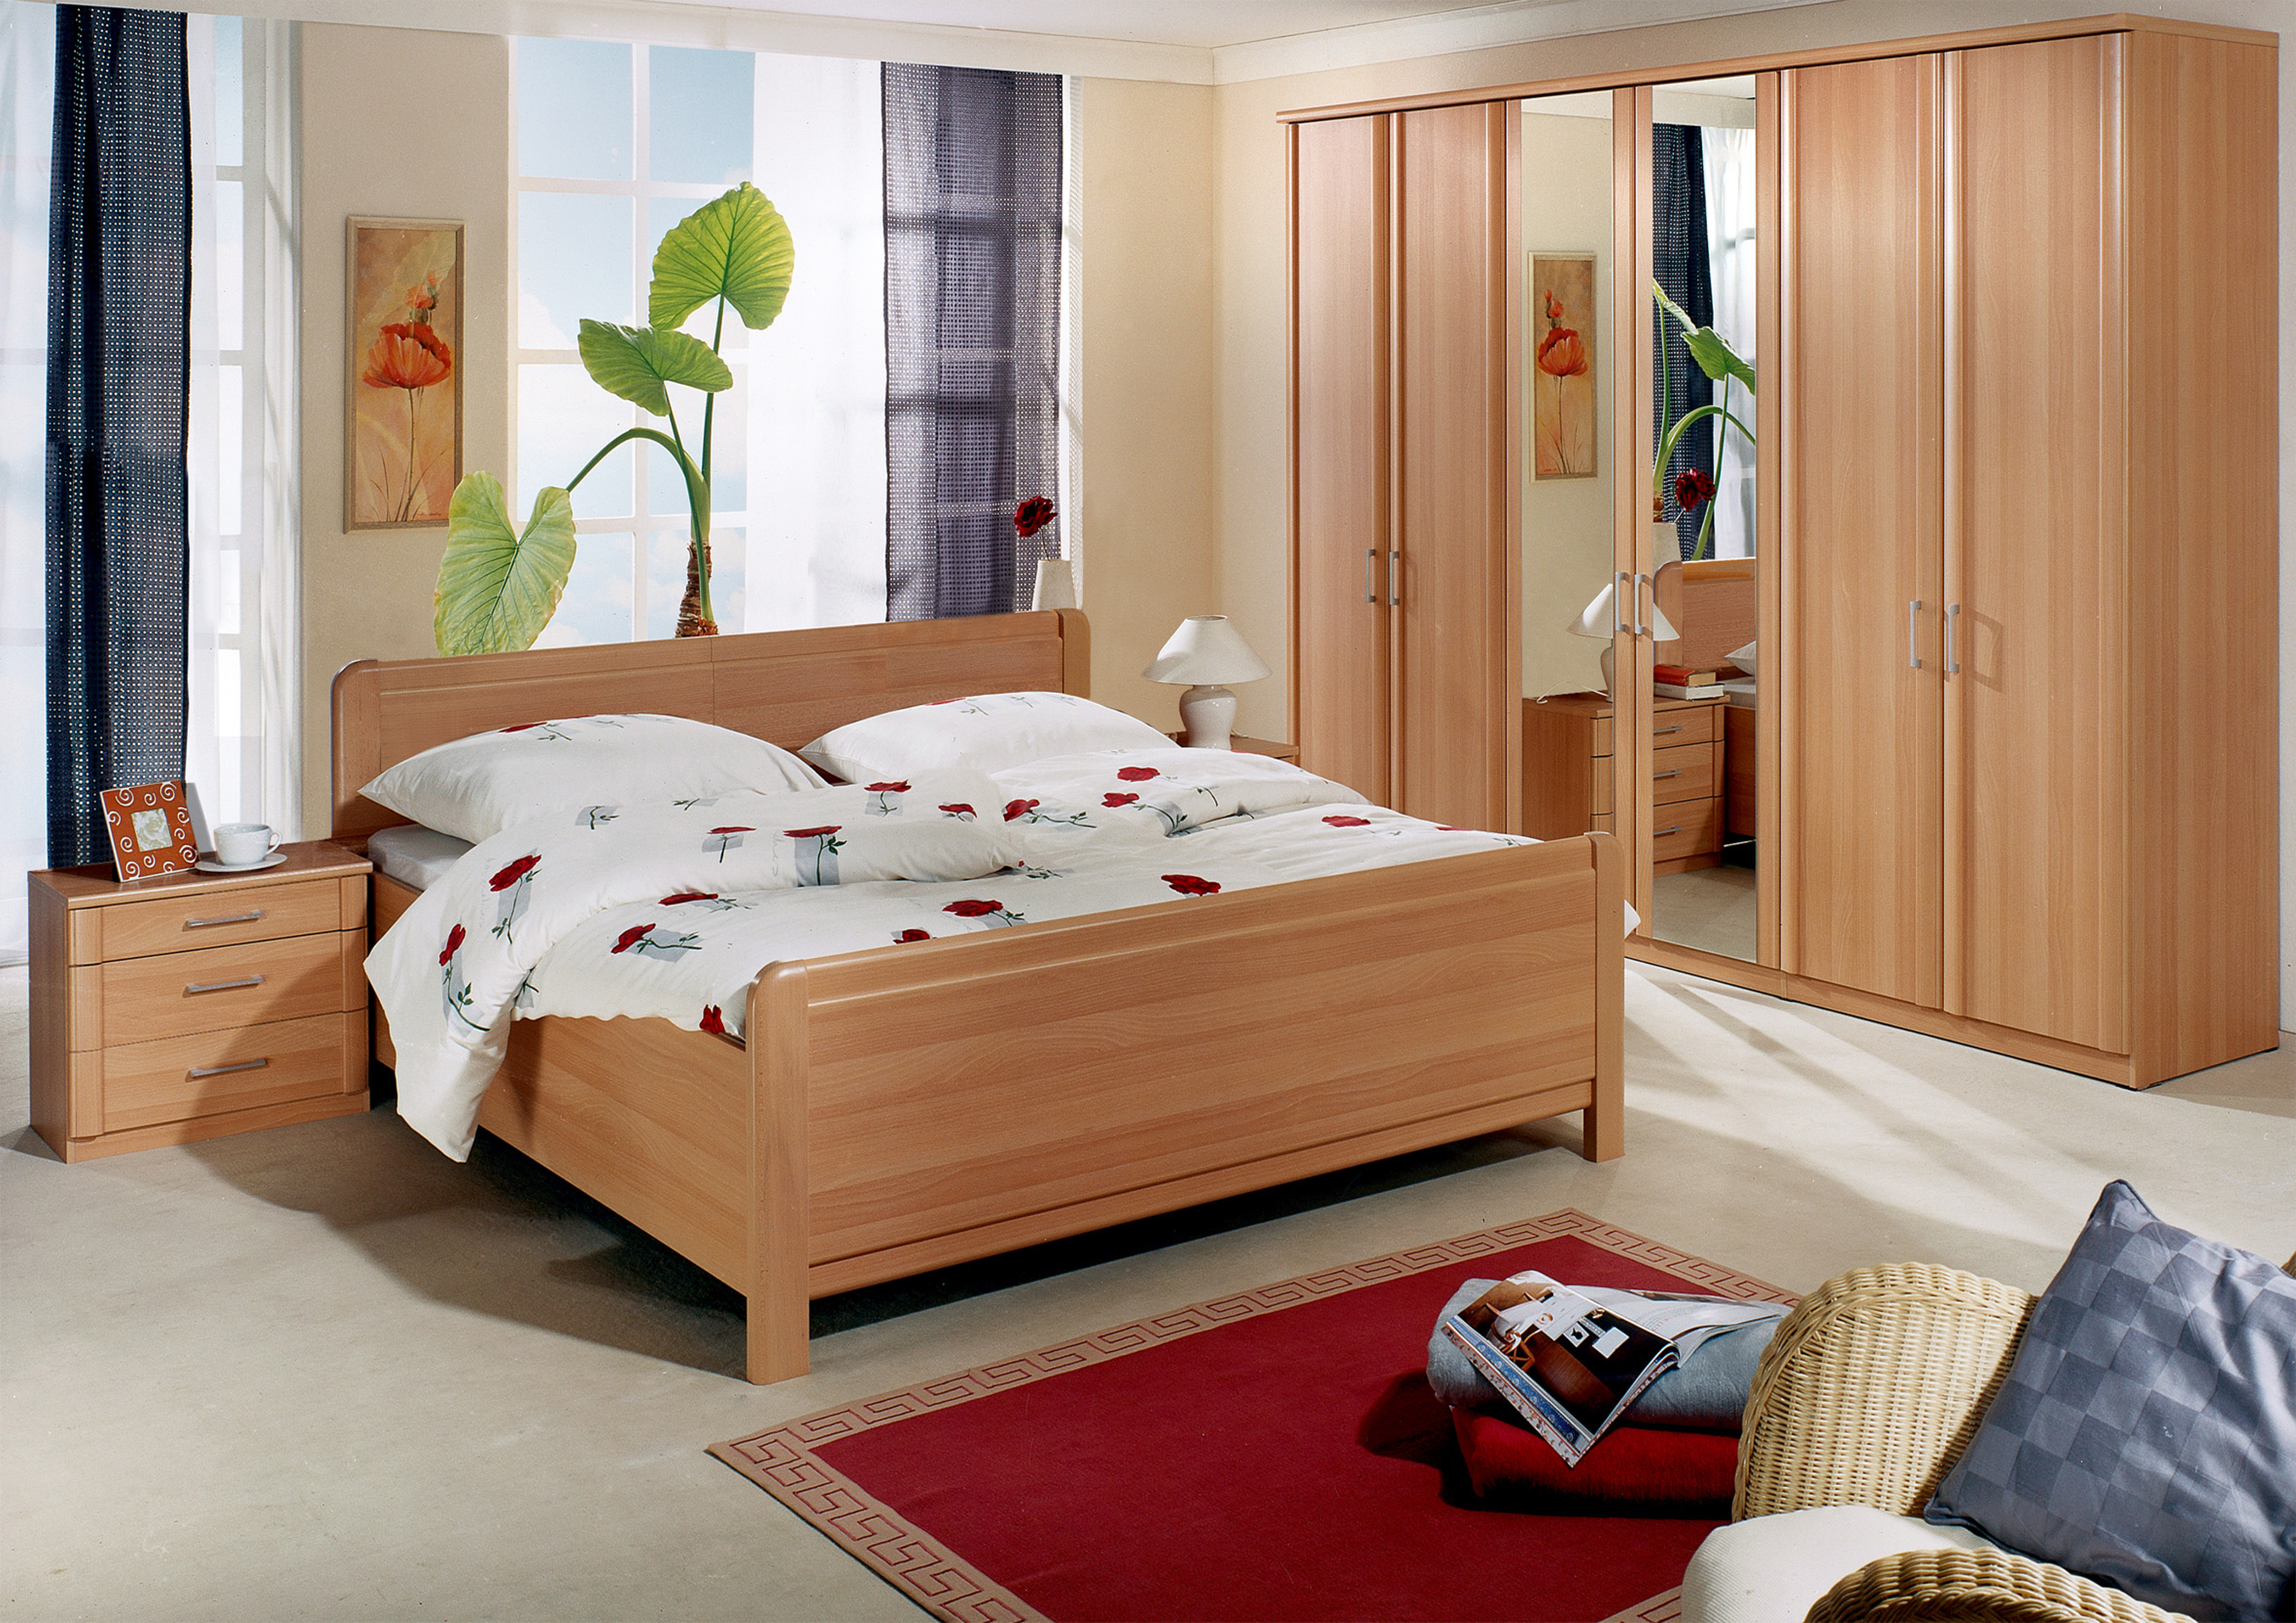 Luxor Wooden Bed Race Furniture Middlesbrough